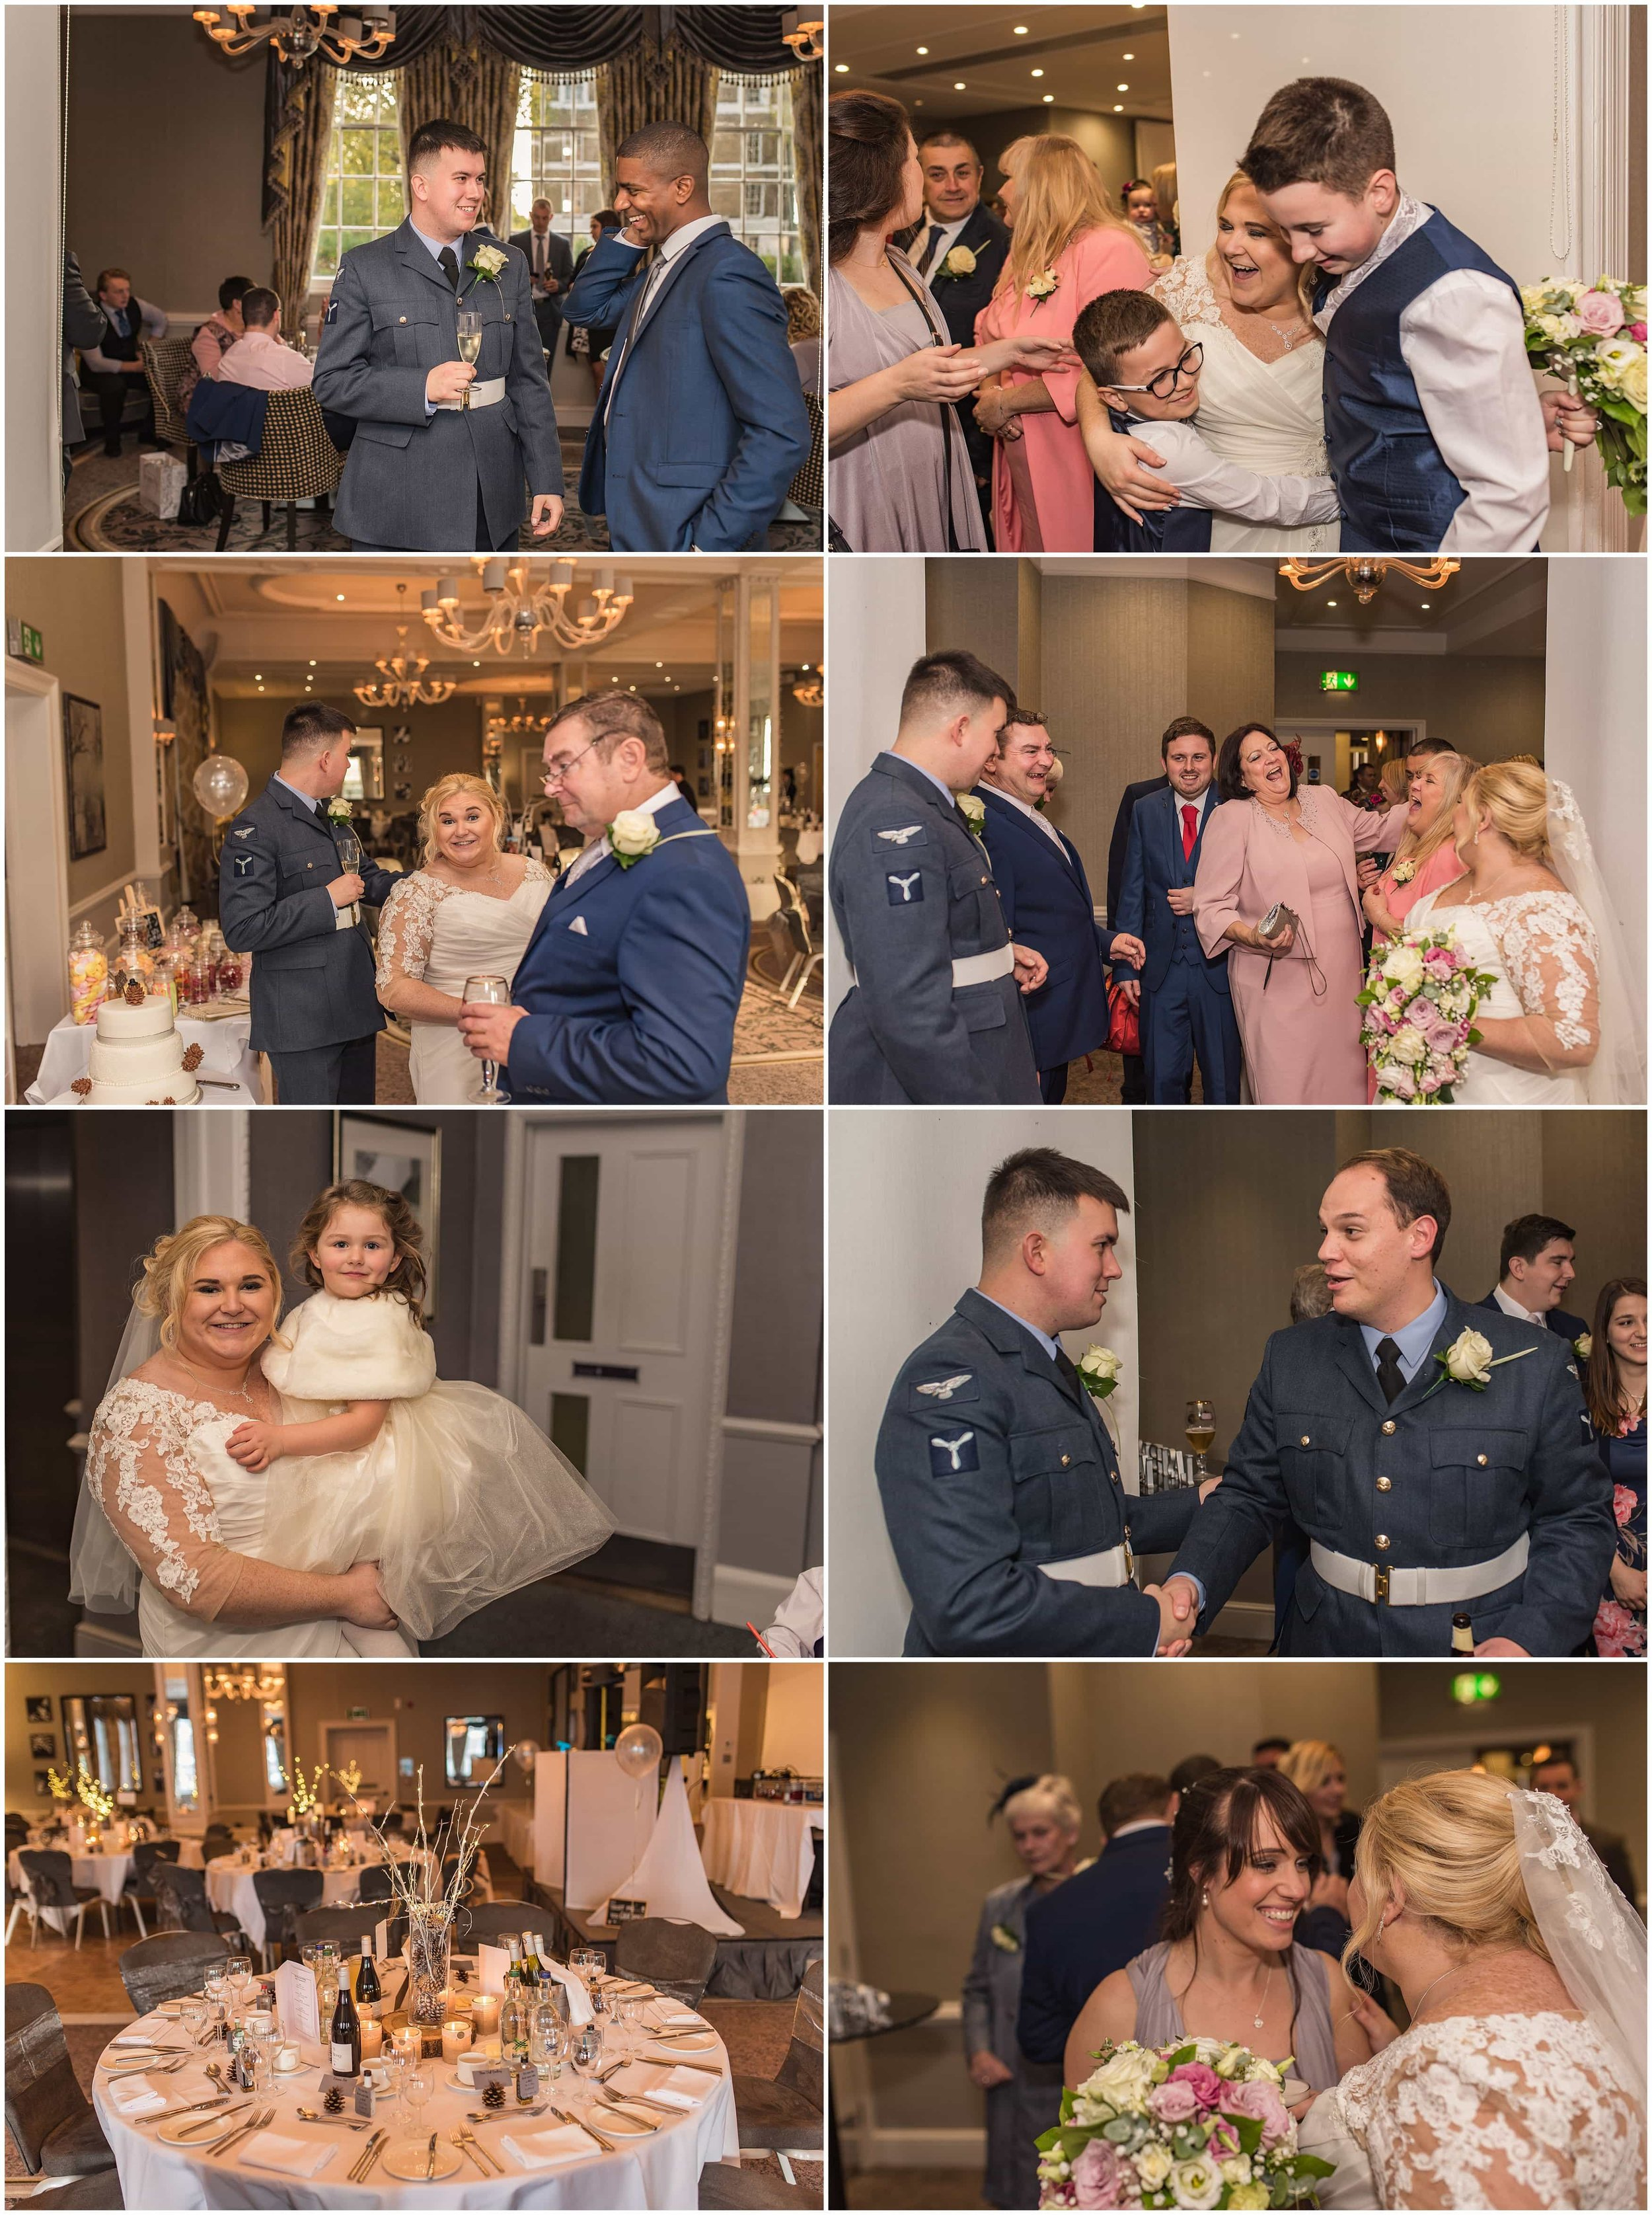 Reception line candid photos at Richmond Hill Hotel captured by Surrey wedding photographer